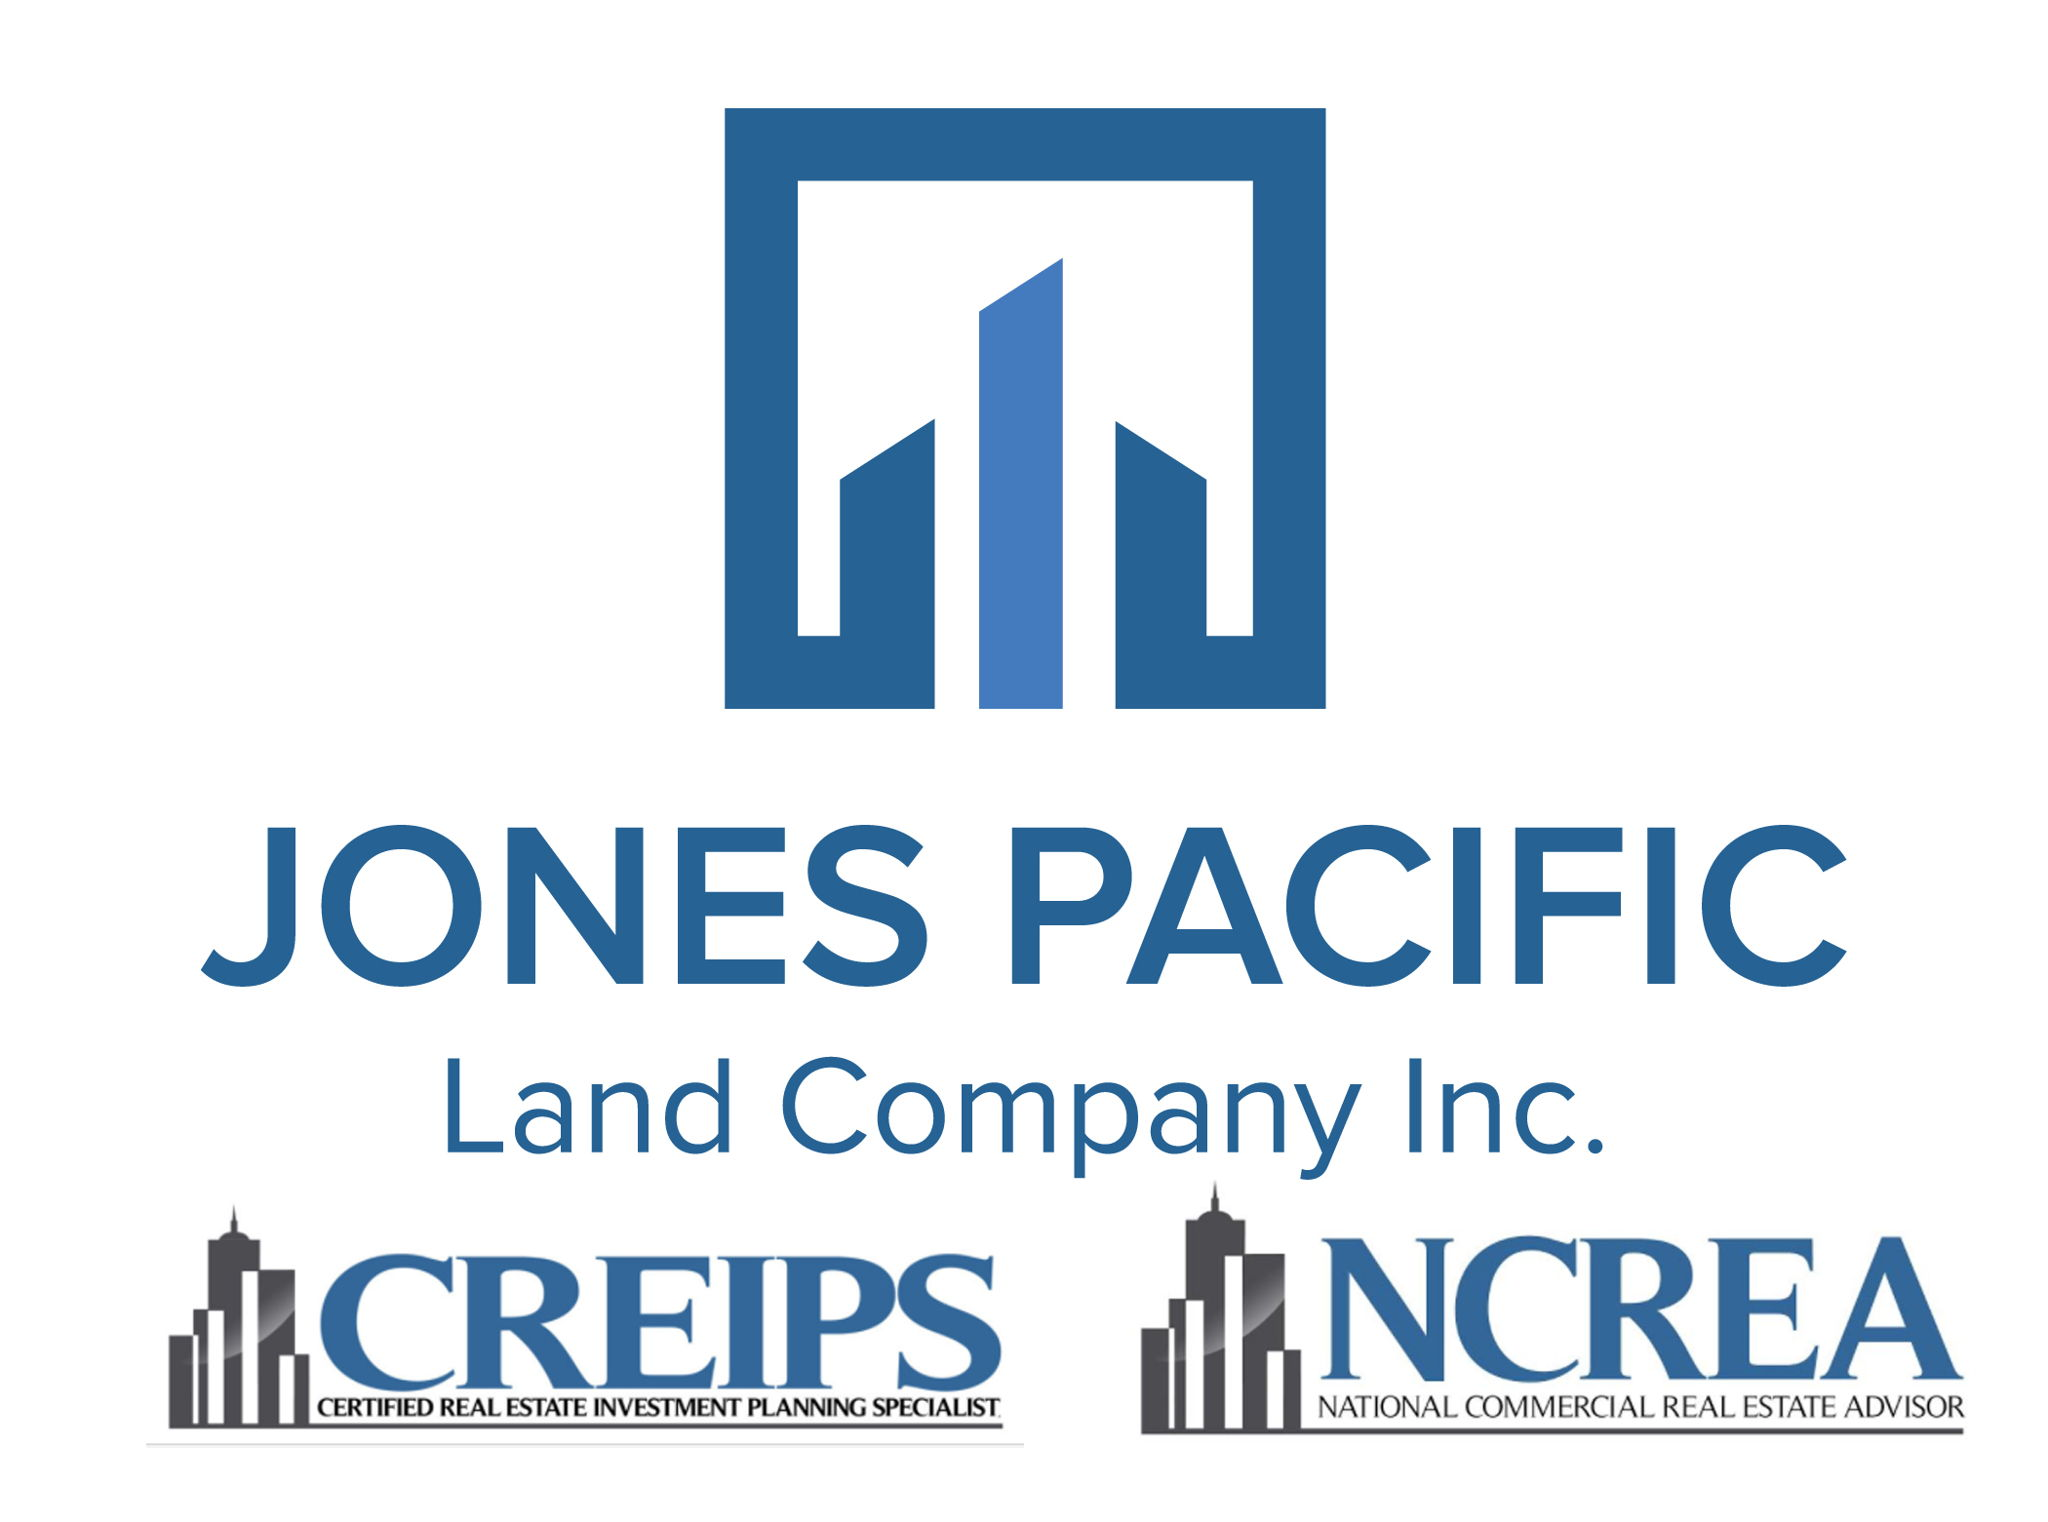 Jones Pacific Land Company, Inc.